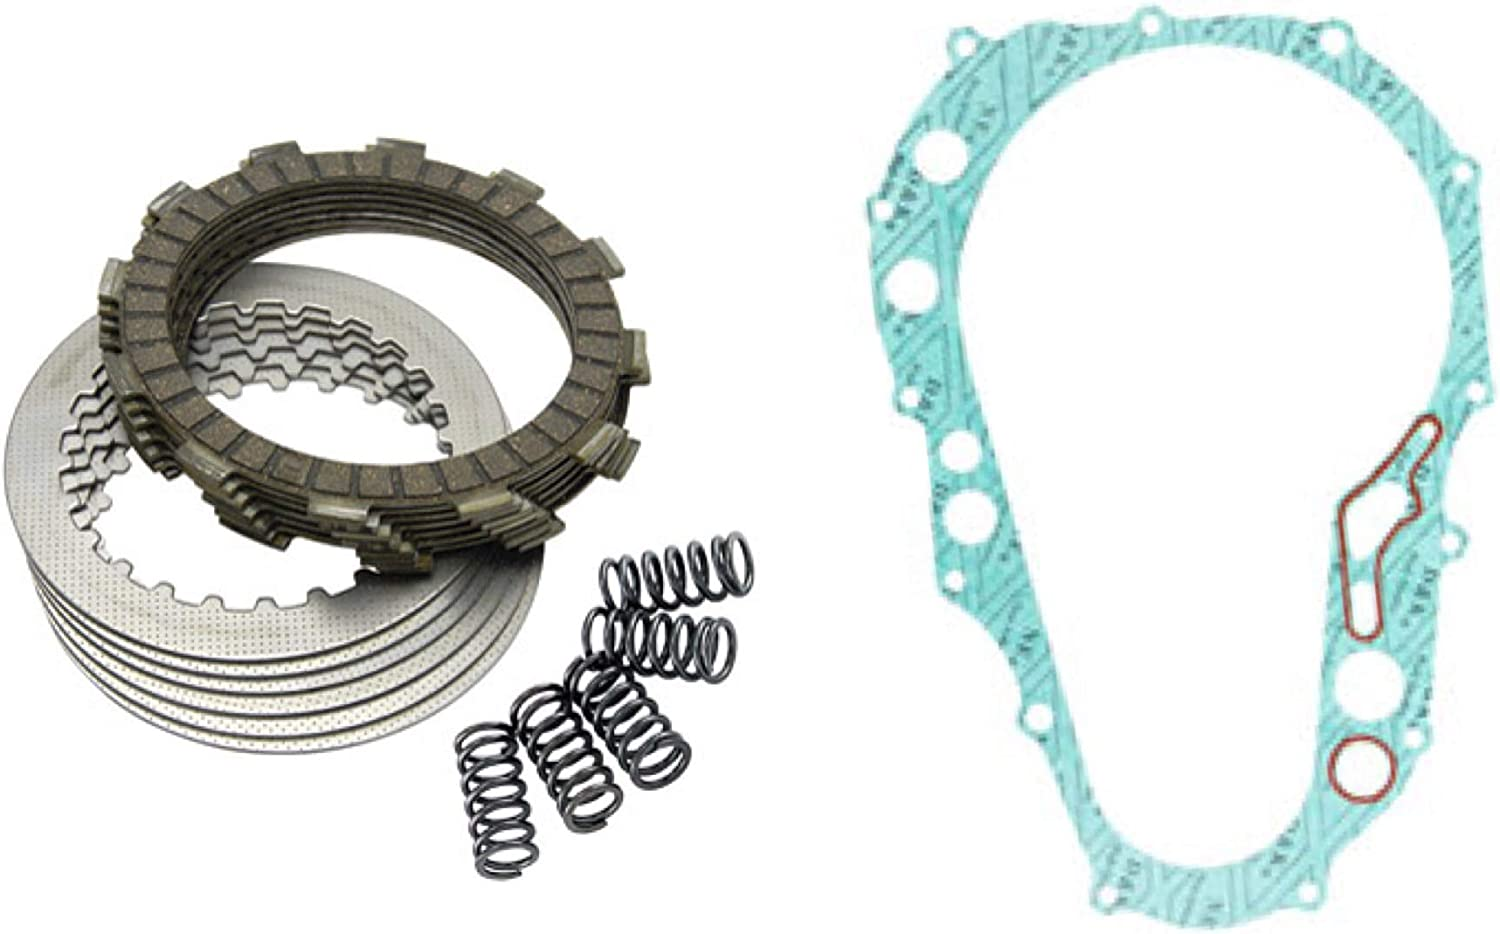 Tusk Heavy Duty Clutch Kit Cover with Gasket and Jacksonville Sale item Mall Springs